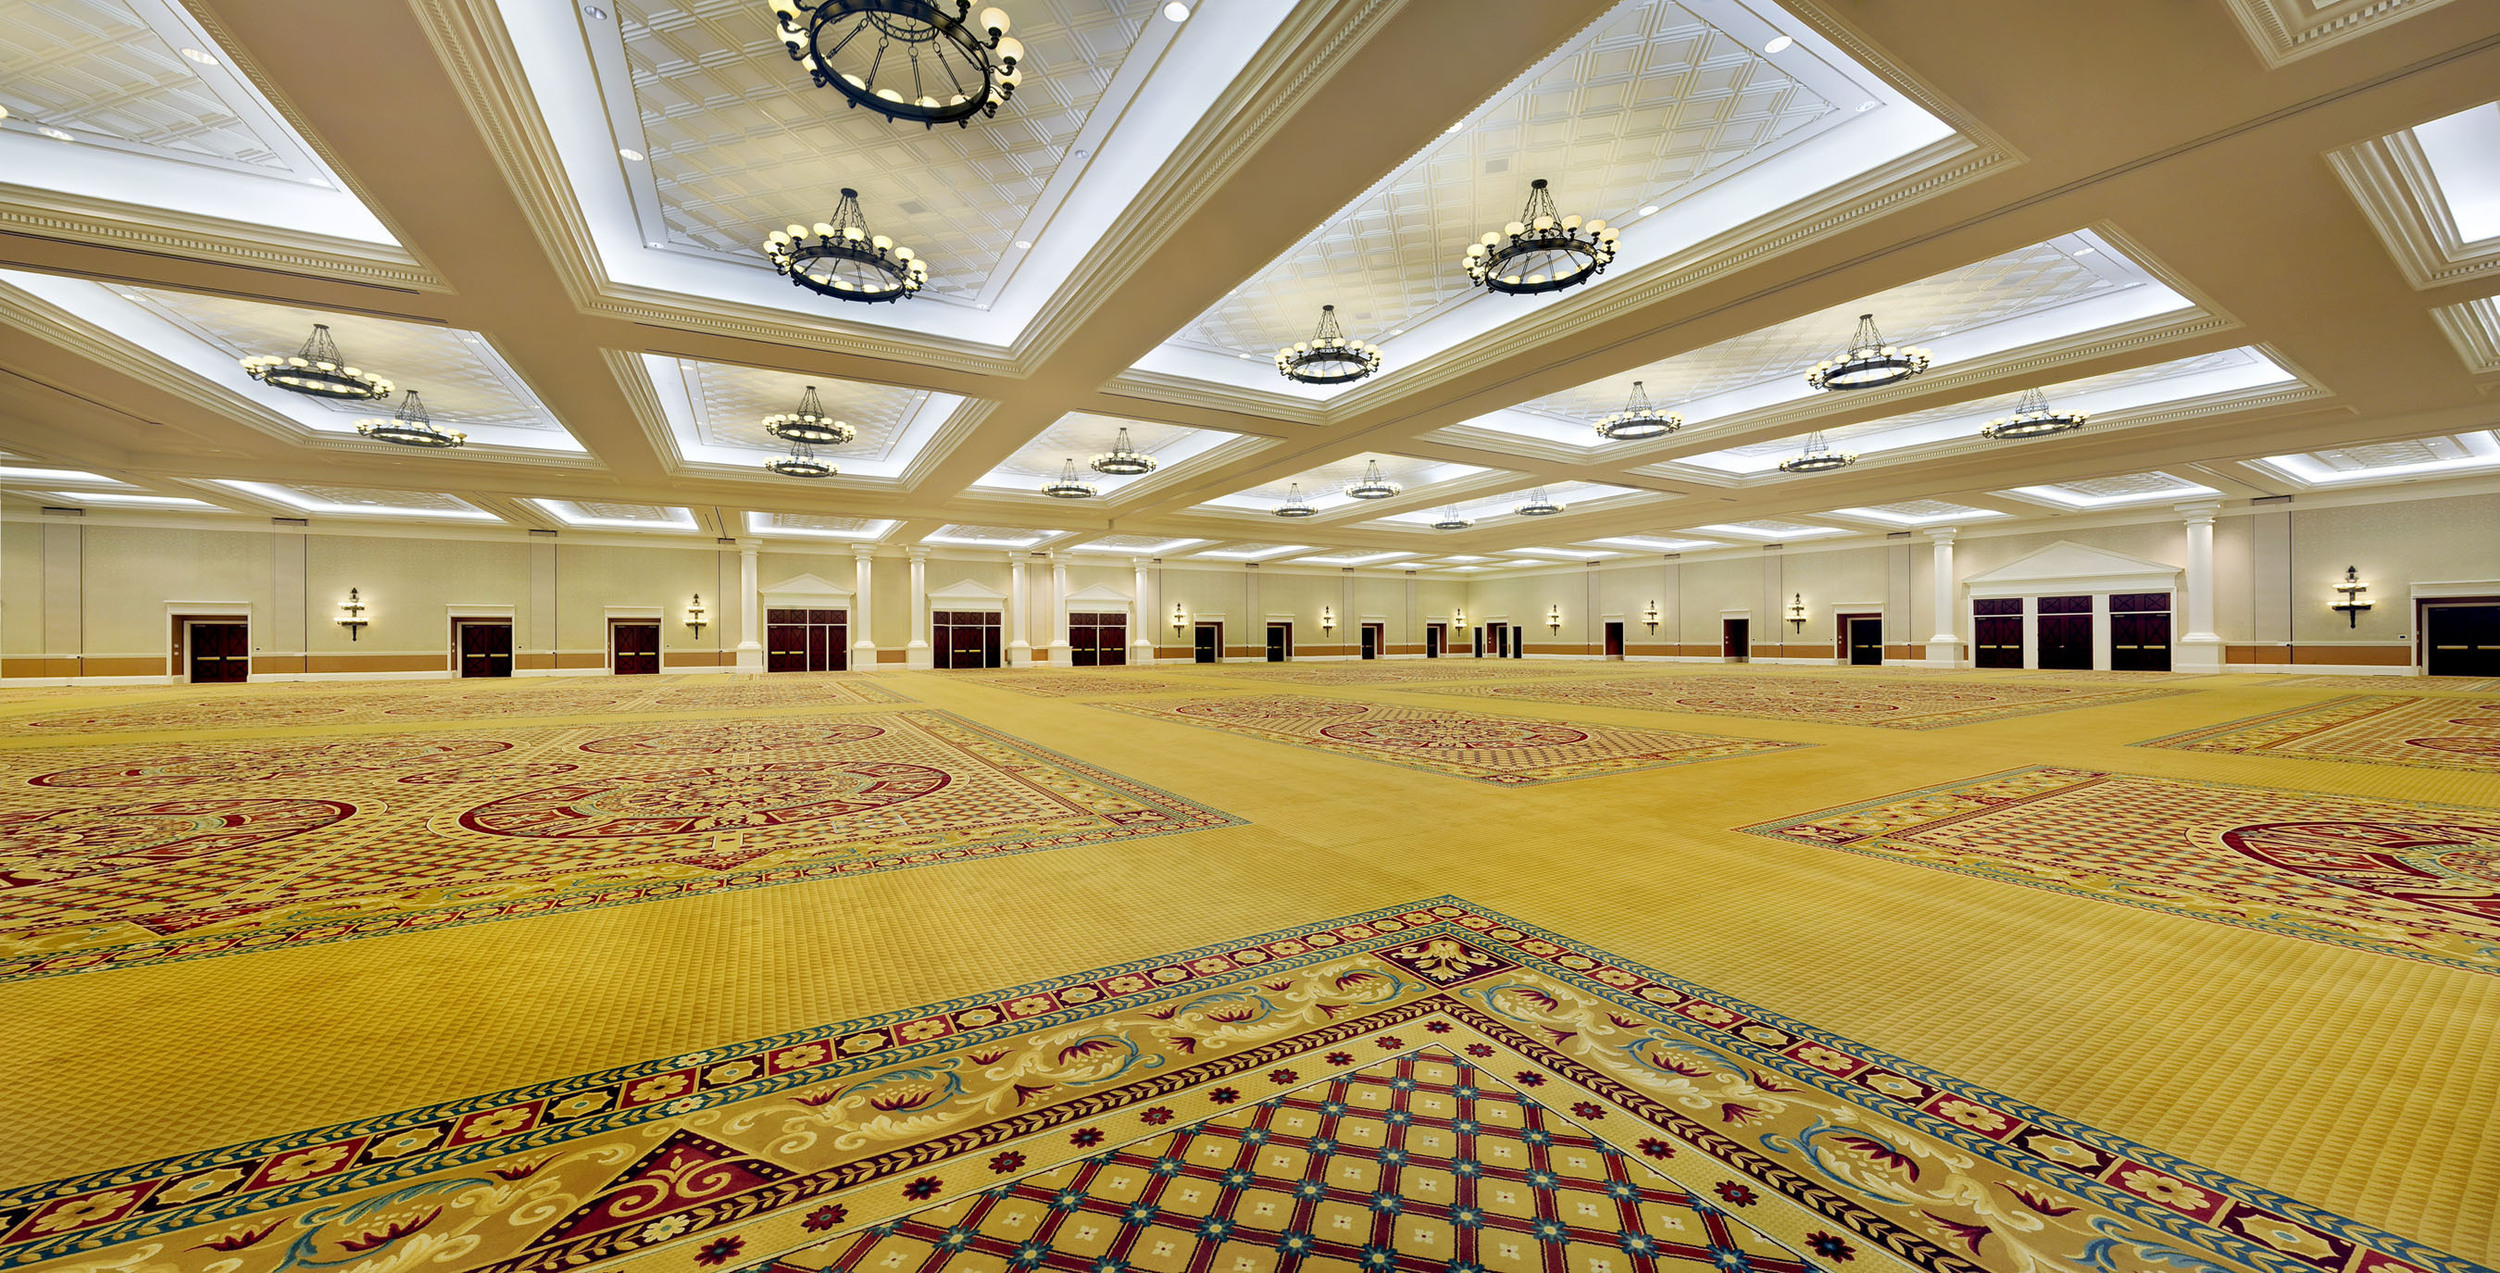 Ceasars Place Ballrooms mean buisness.